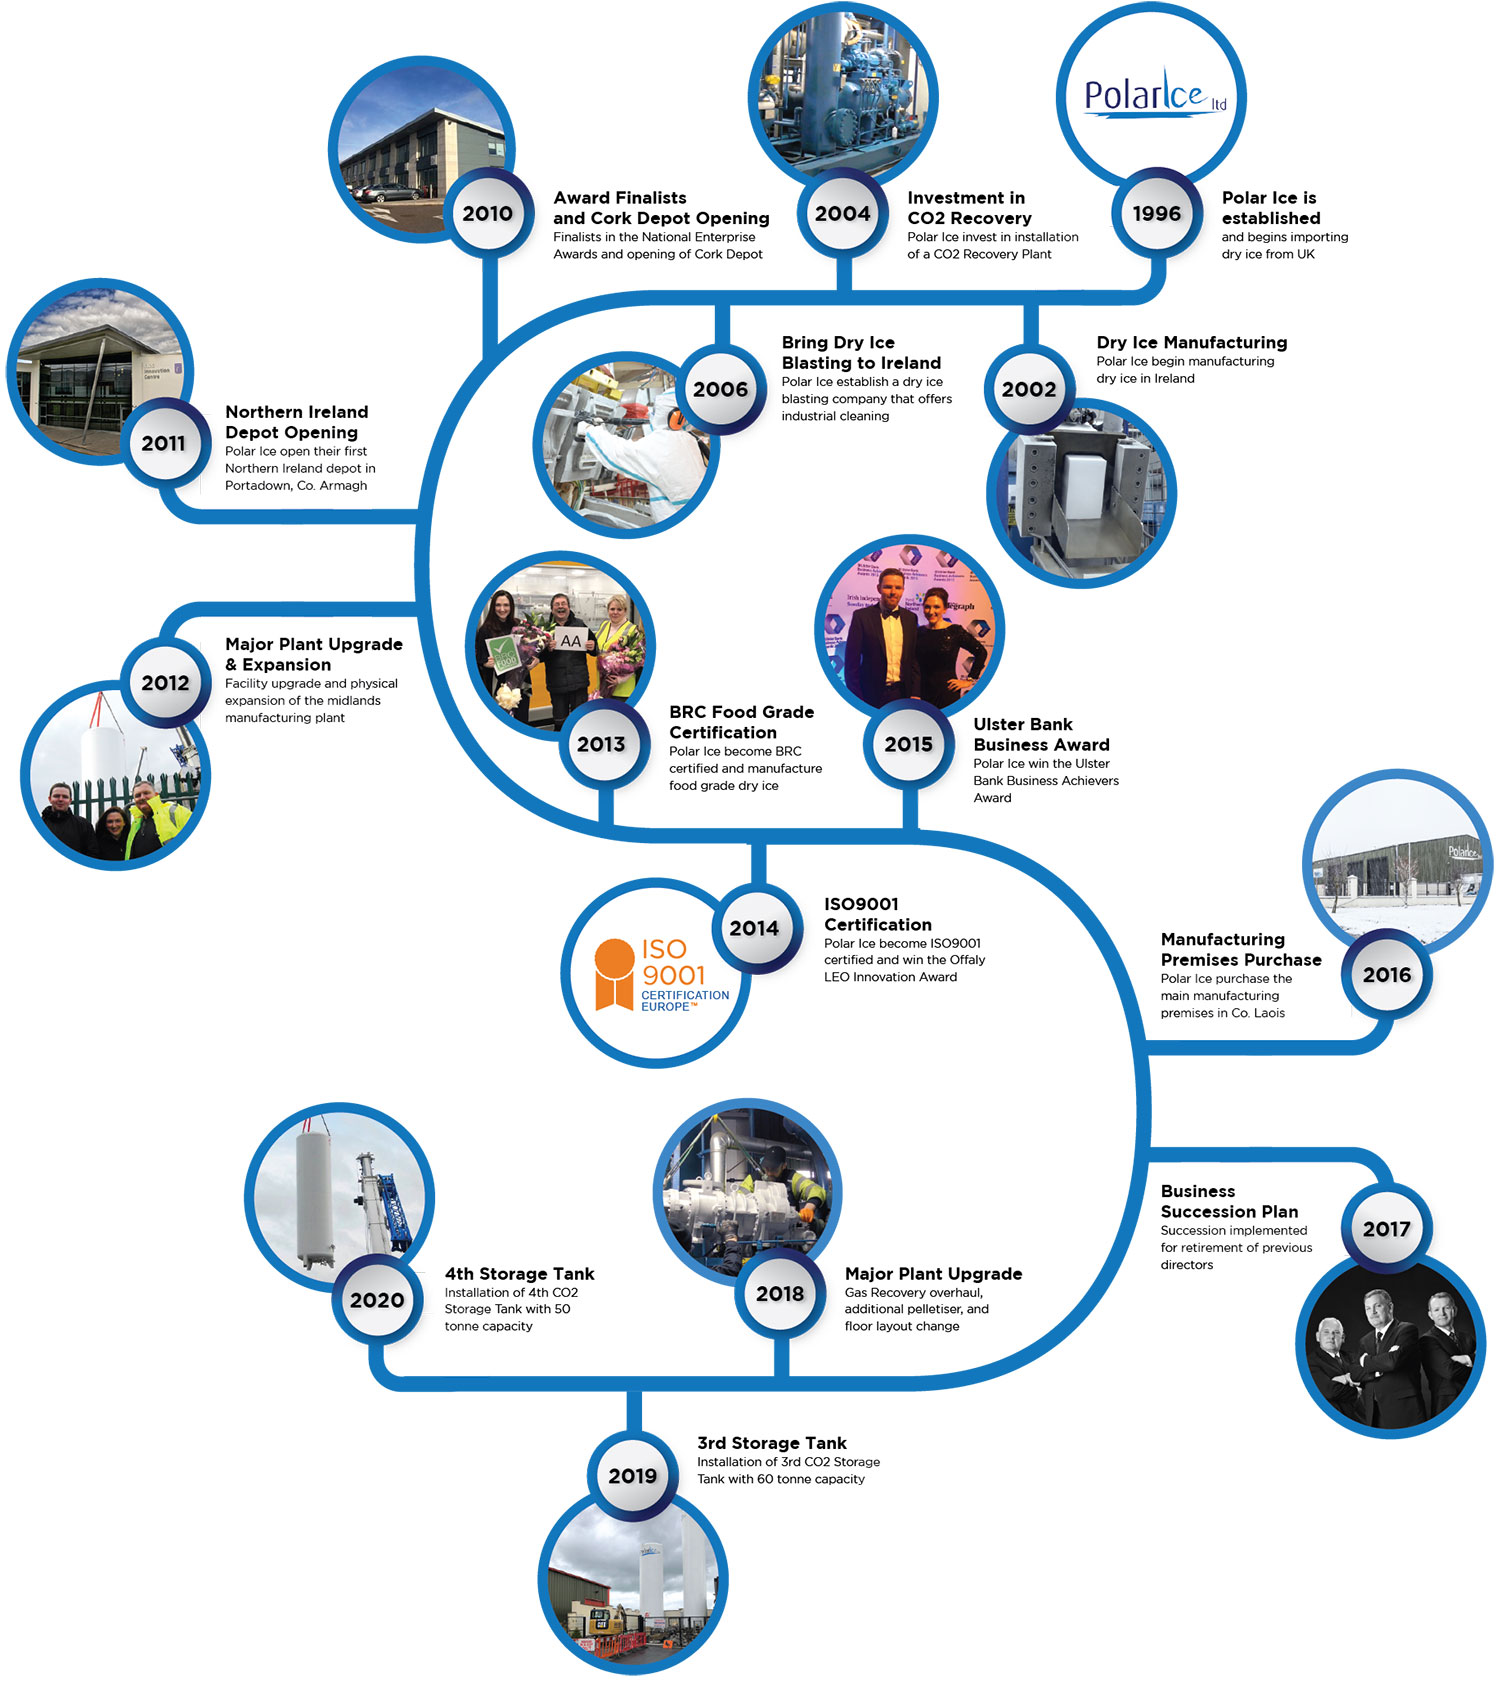 Timeline of Polar Ice's Business Development Milestones